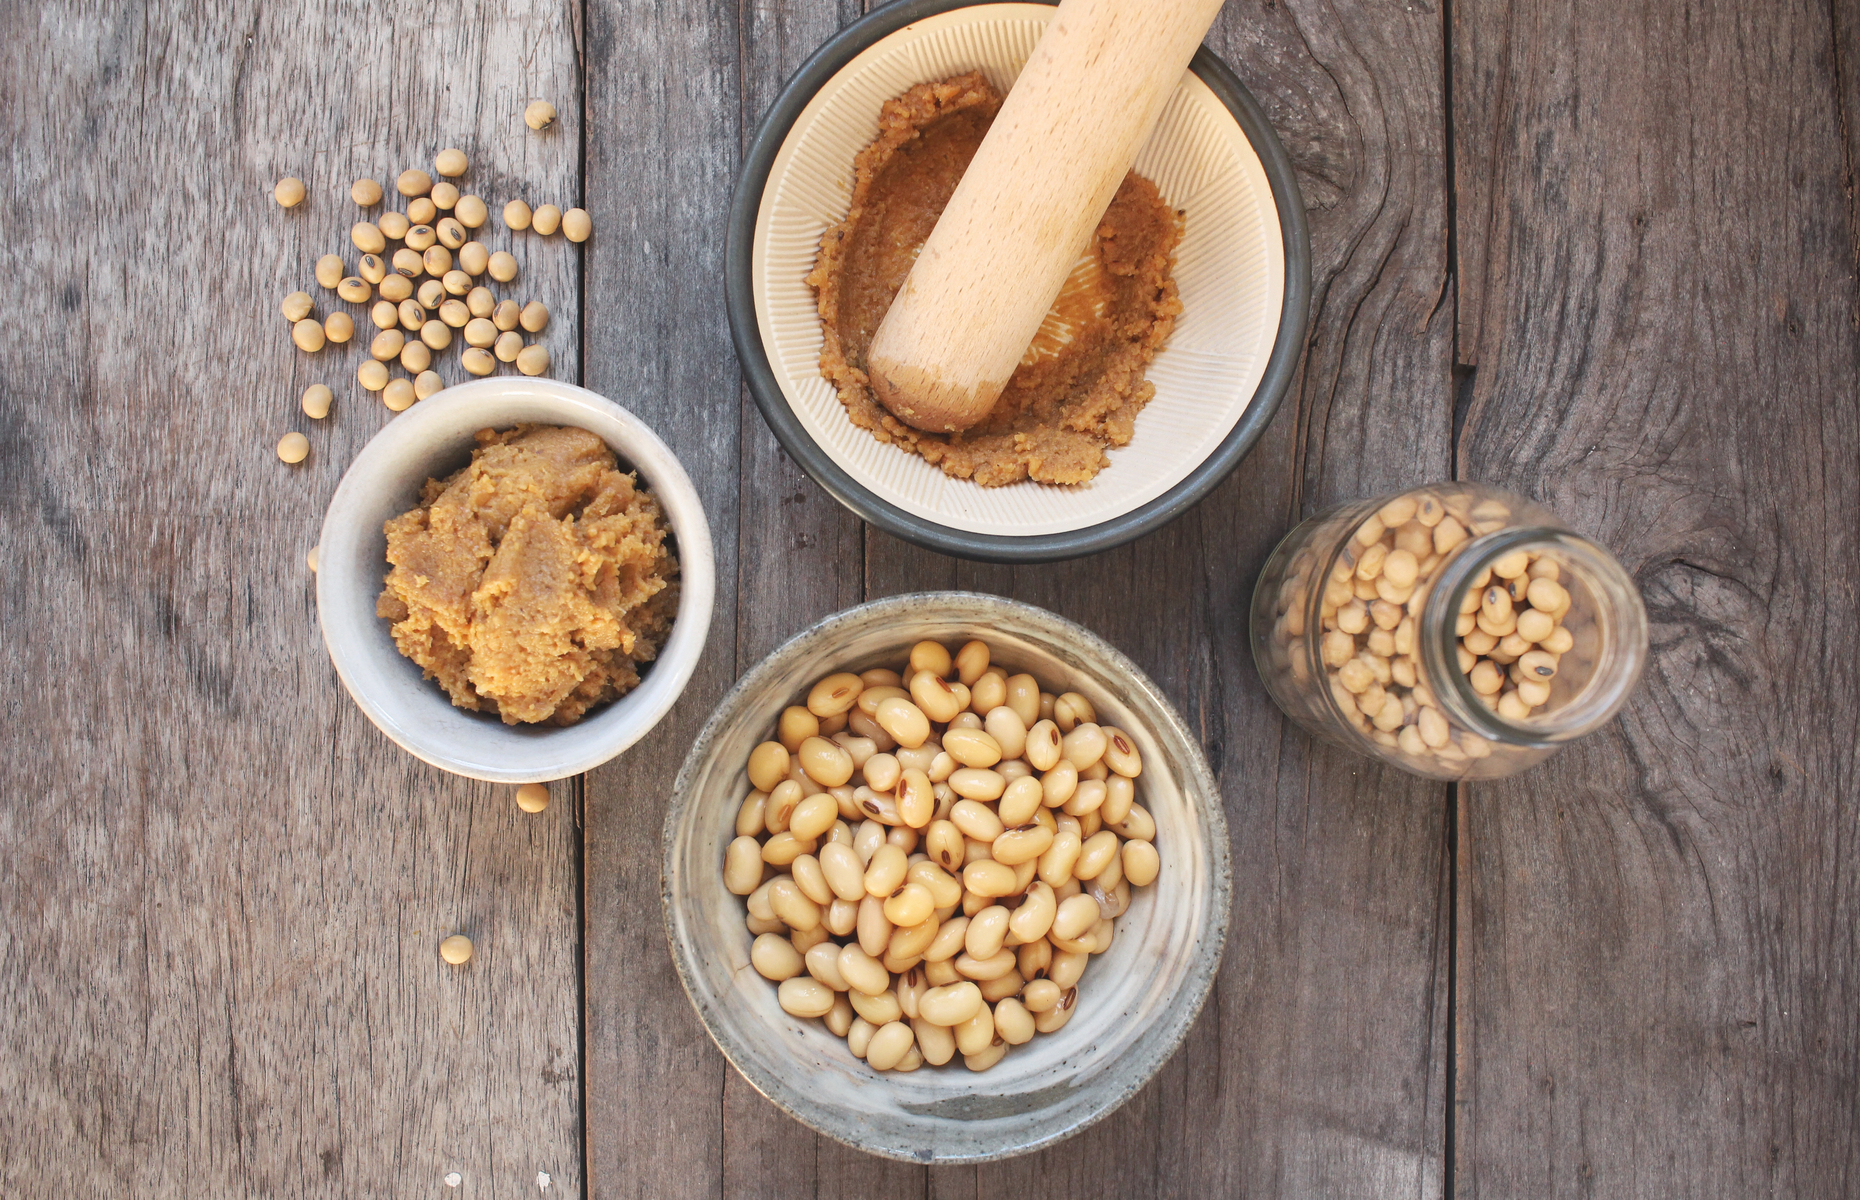 What is miso soy beans